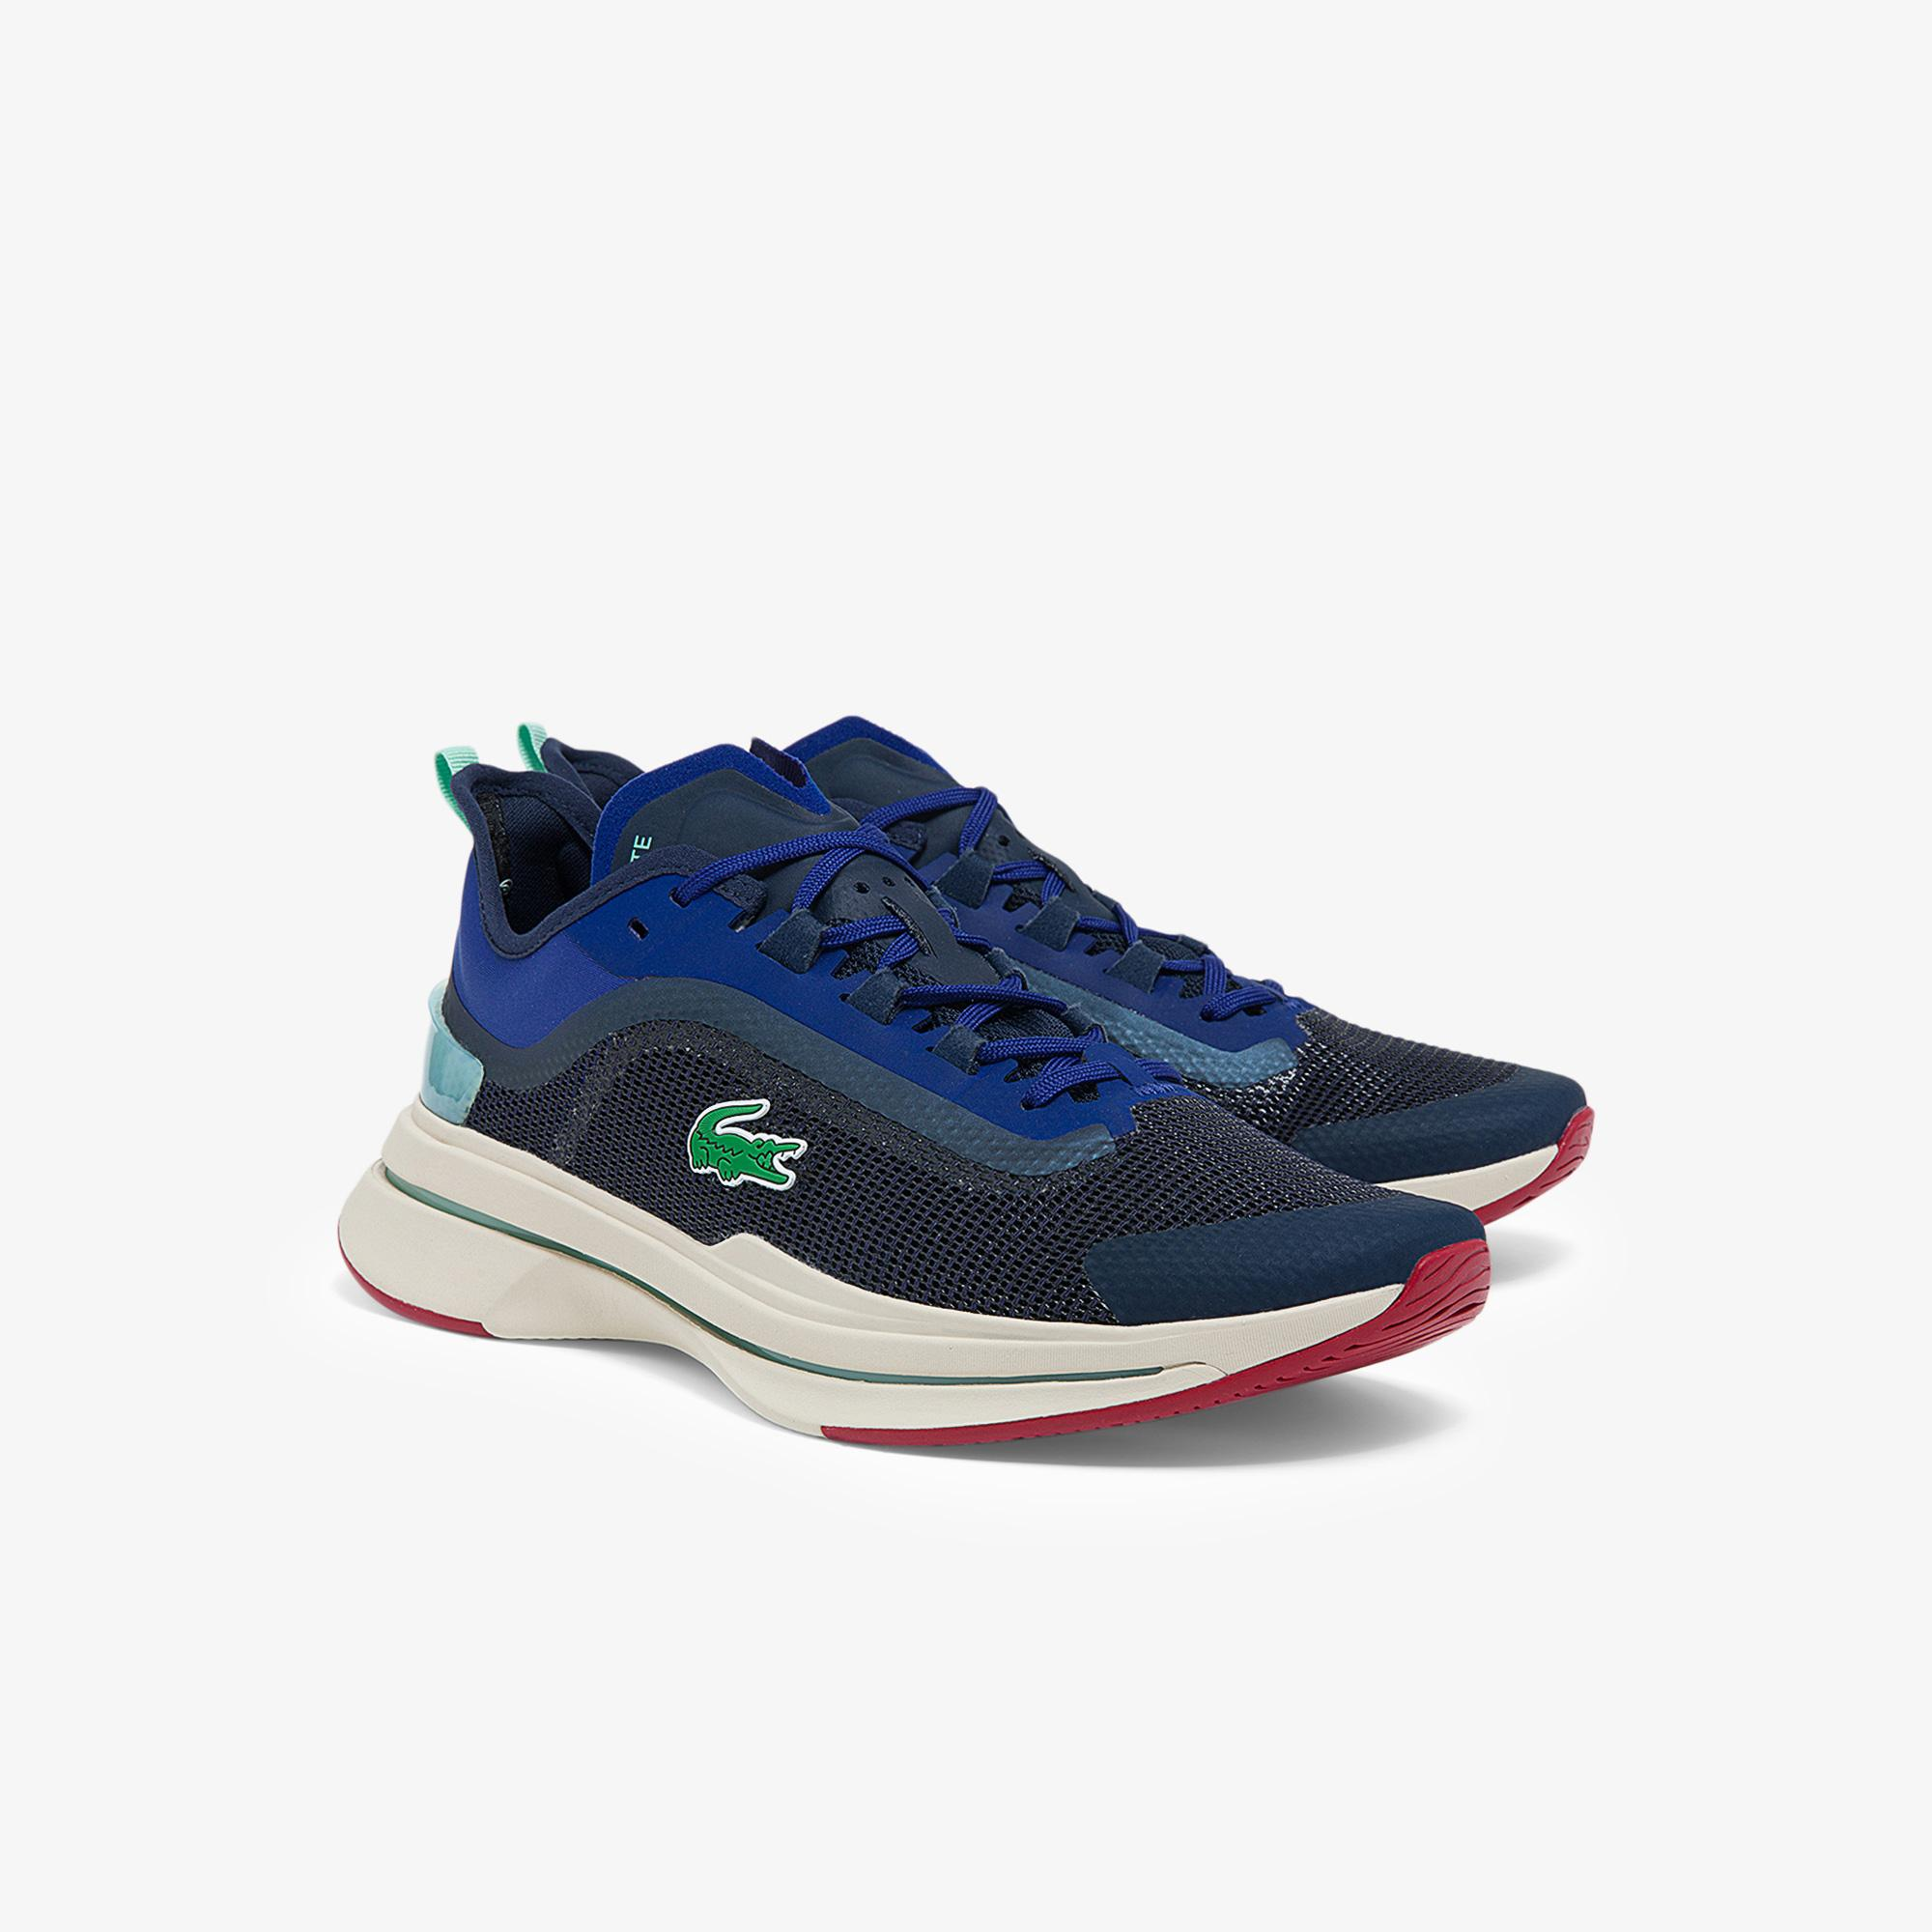 Lacoste Men's Run Spin Ultra Textile Sneakers